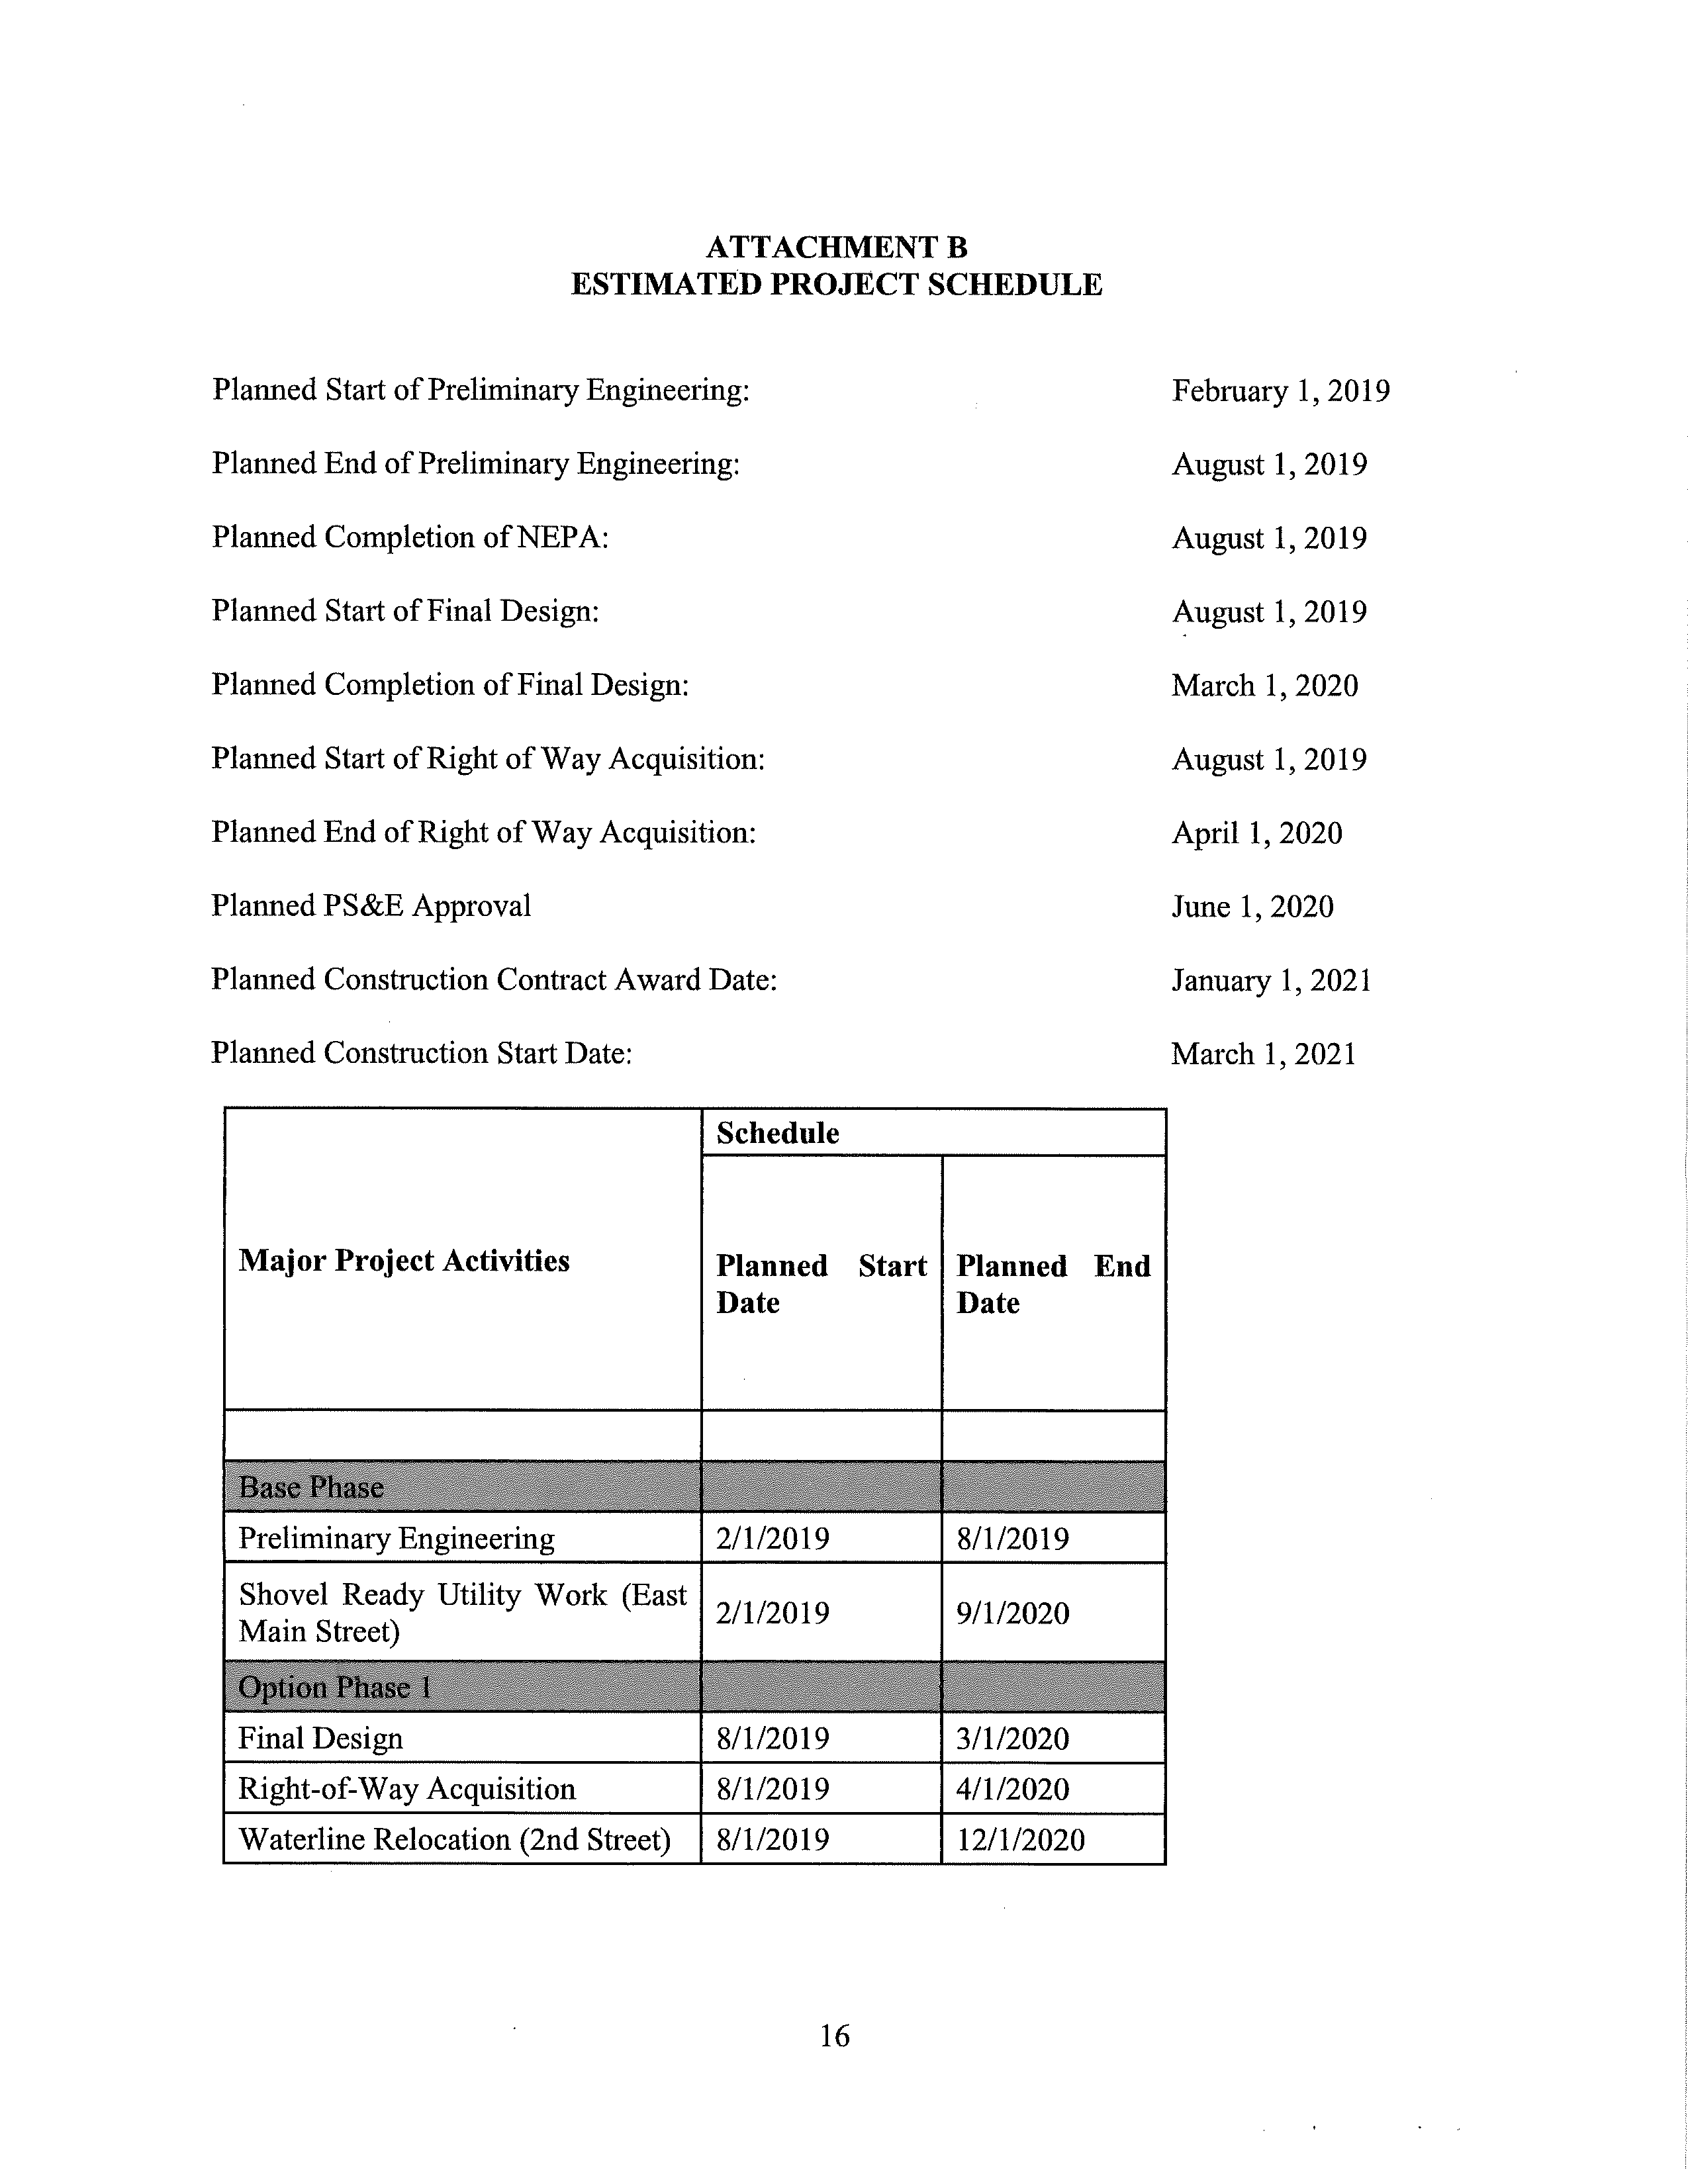 Estimated TIGER Project Schedule 1